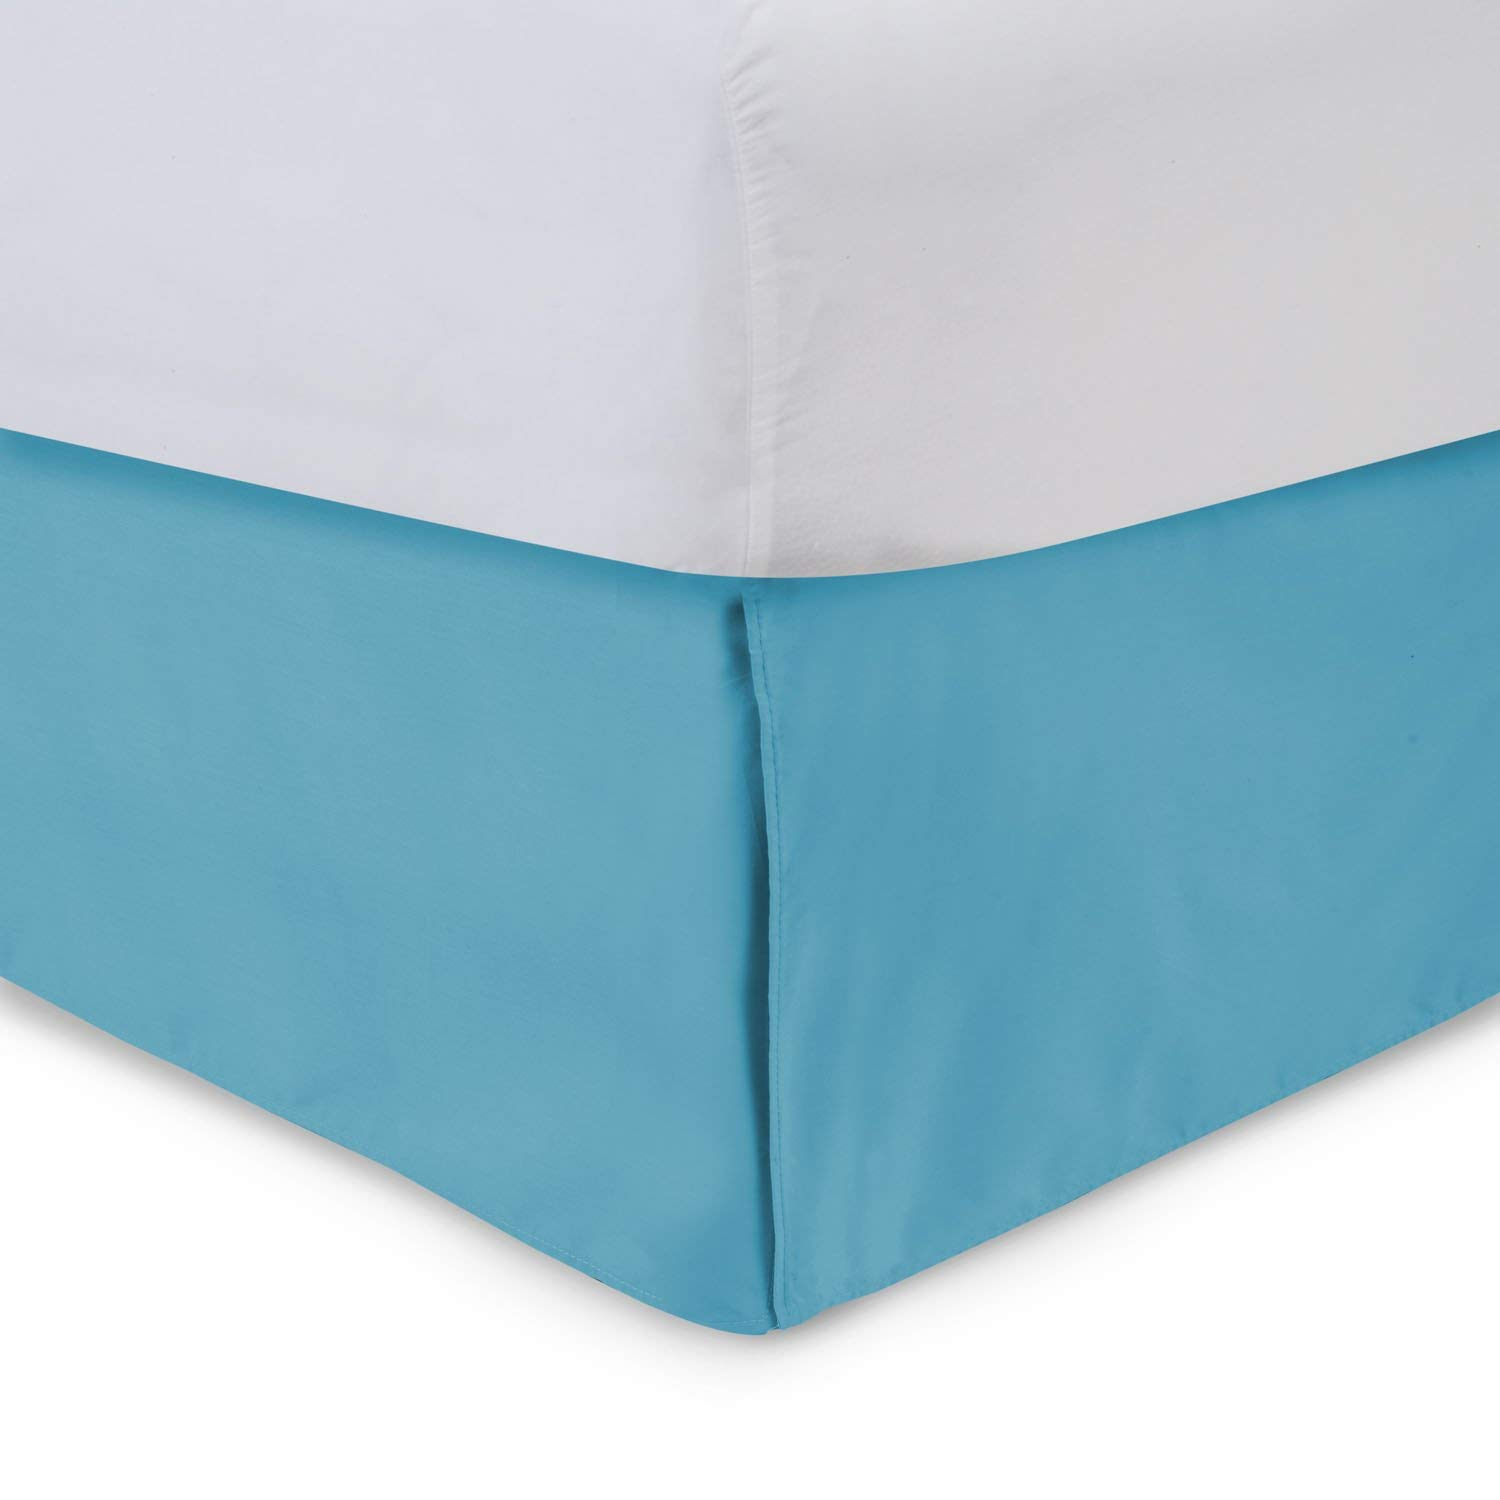 Harmony Lane Tailored Bed Skirt - 18 inch Drop, Aqua, King Bedskirt with Split Corners (Available in and 16 Colors)